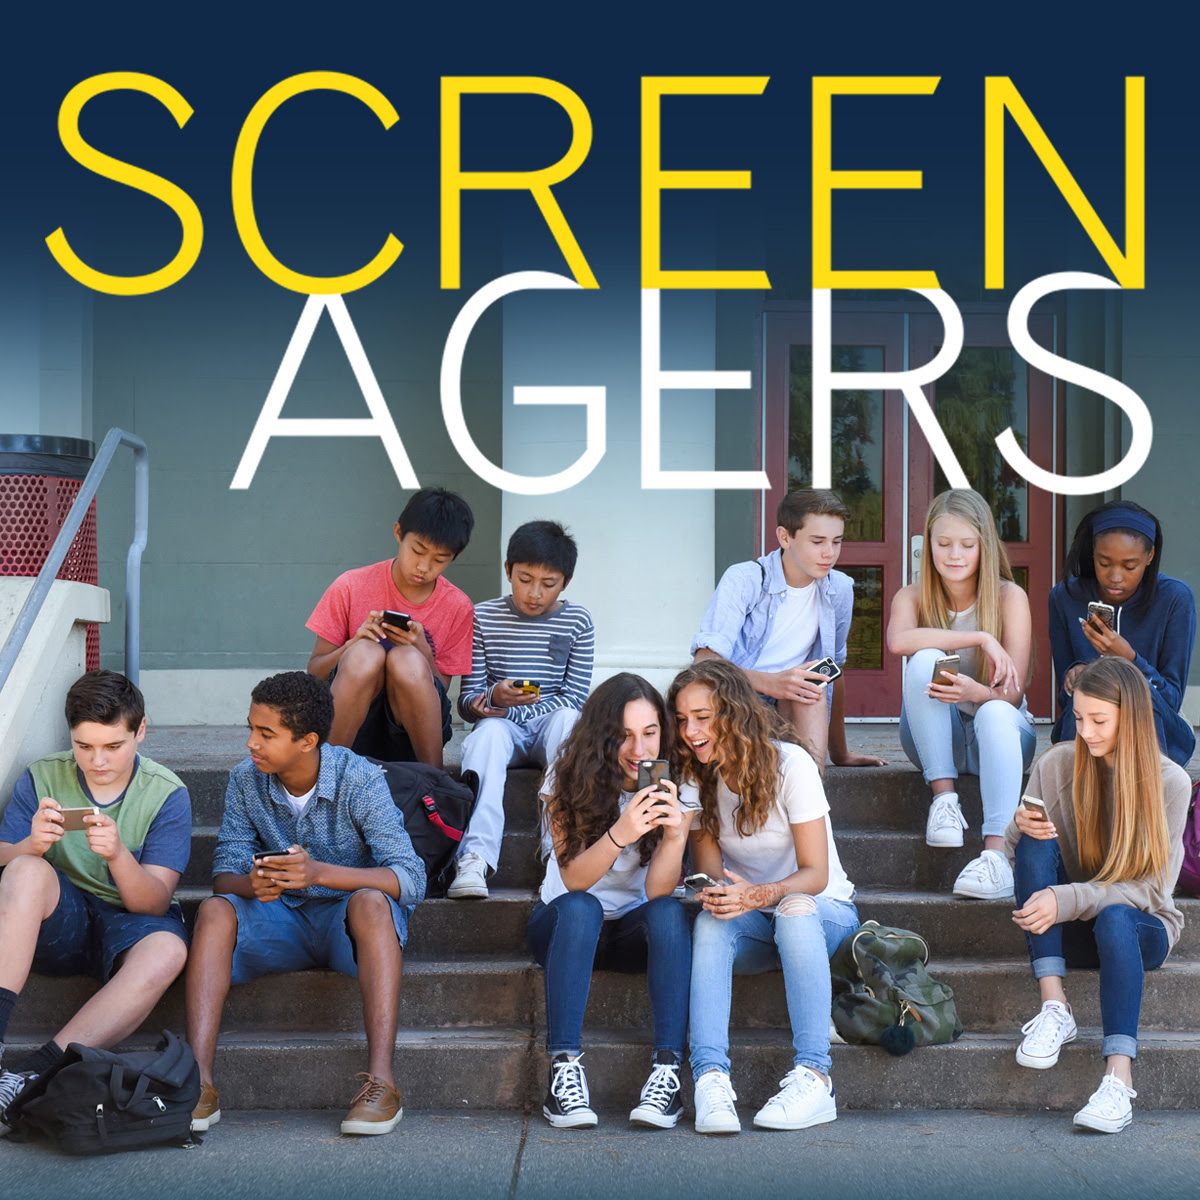 Screenagers Film Presented By Wellness and Education Clinic at Owl Creek